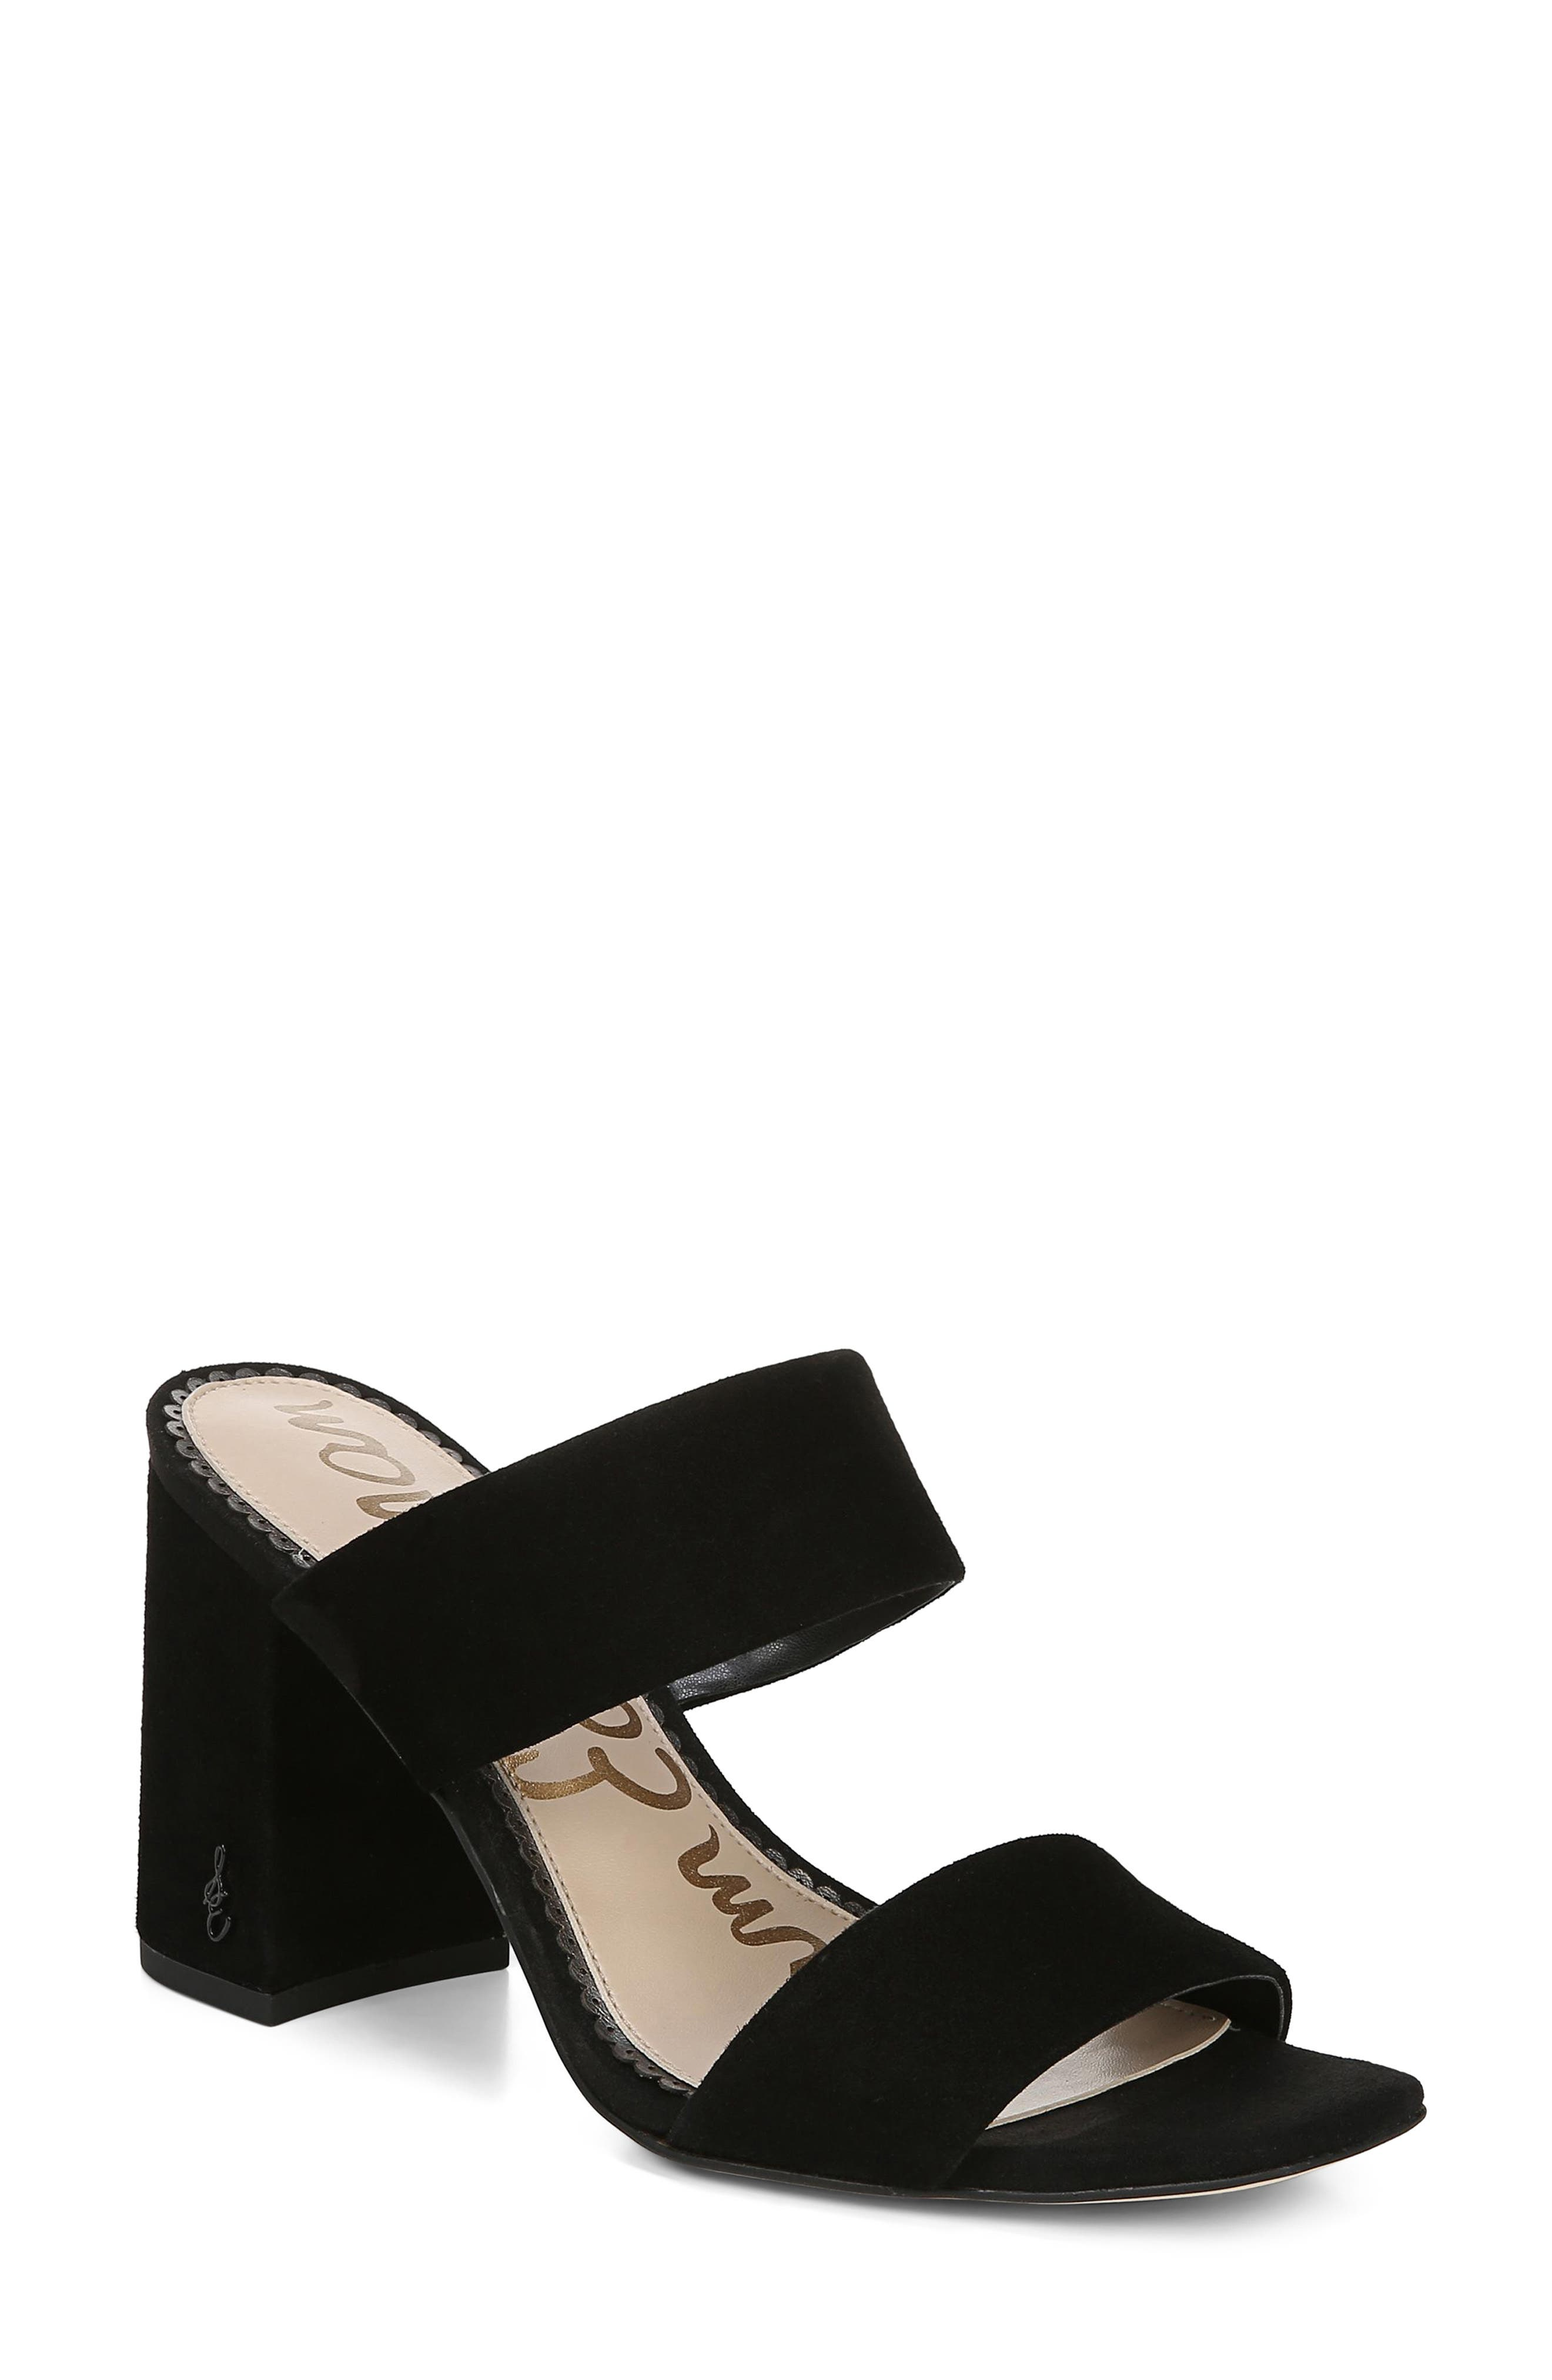 SAM EDELMAN Delaney Sandal, Main, color, BLACK SUEDE